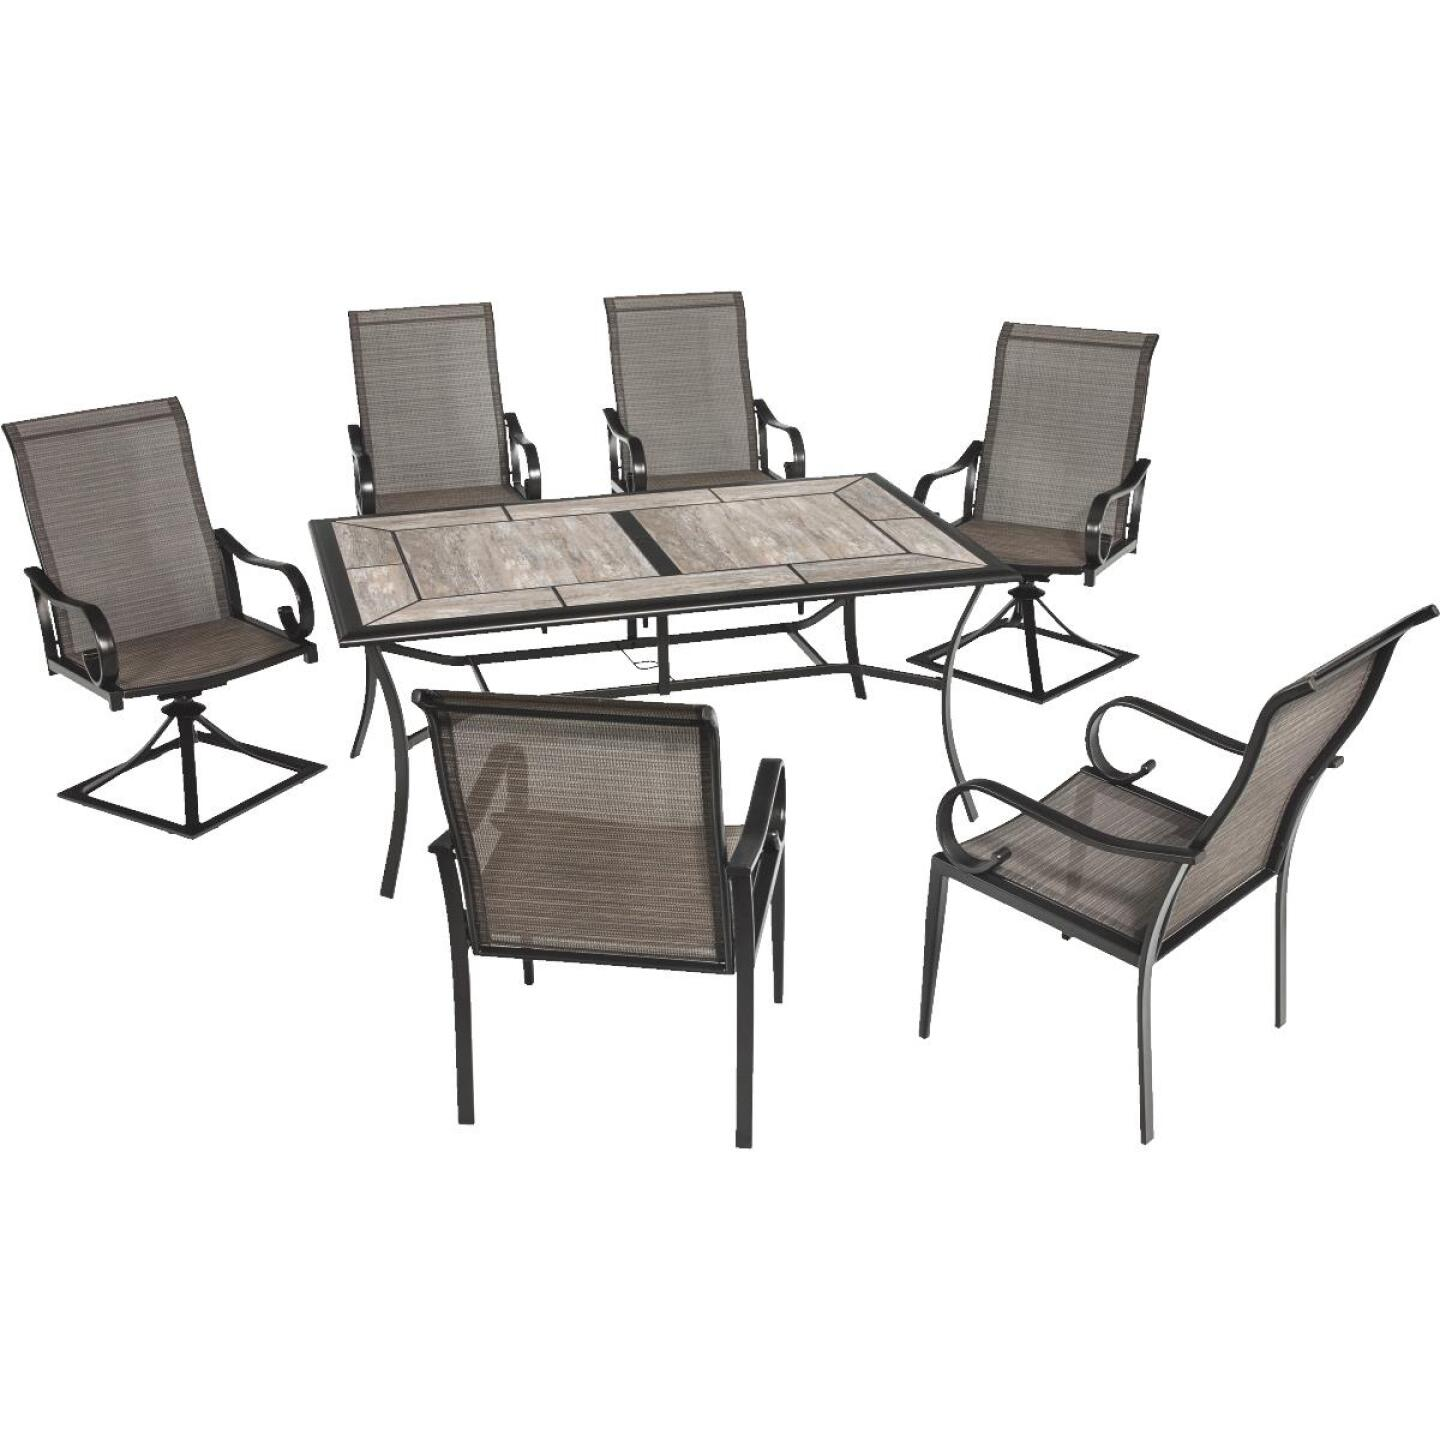 Outdoor Expressions Berkshire 7-Piece Dining Set Image 149